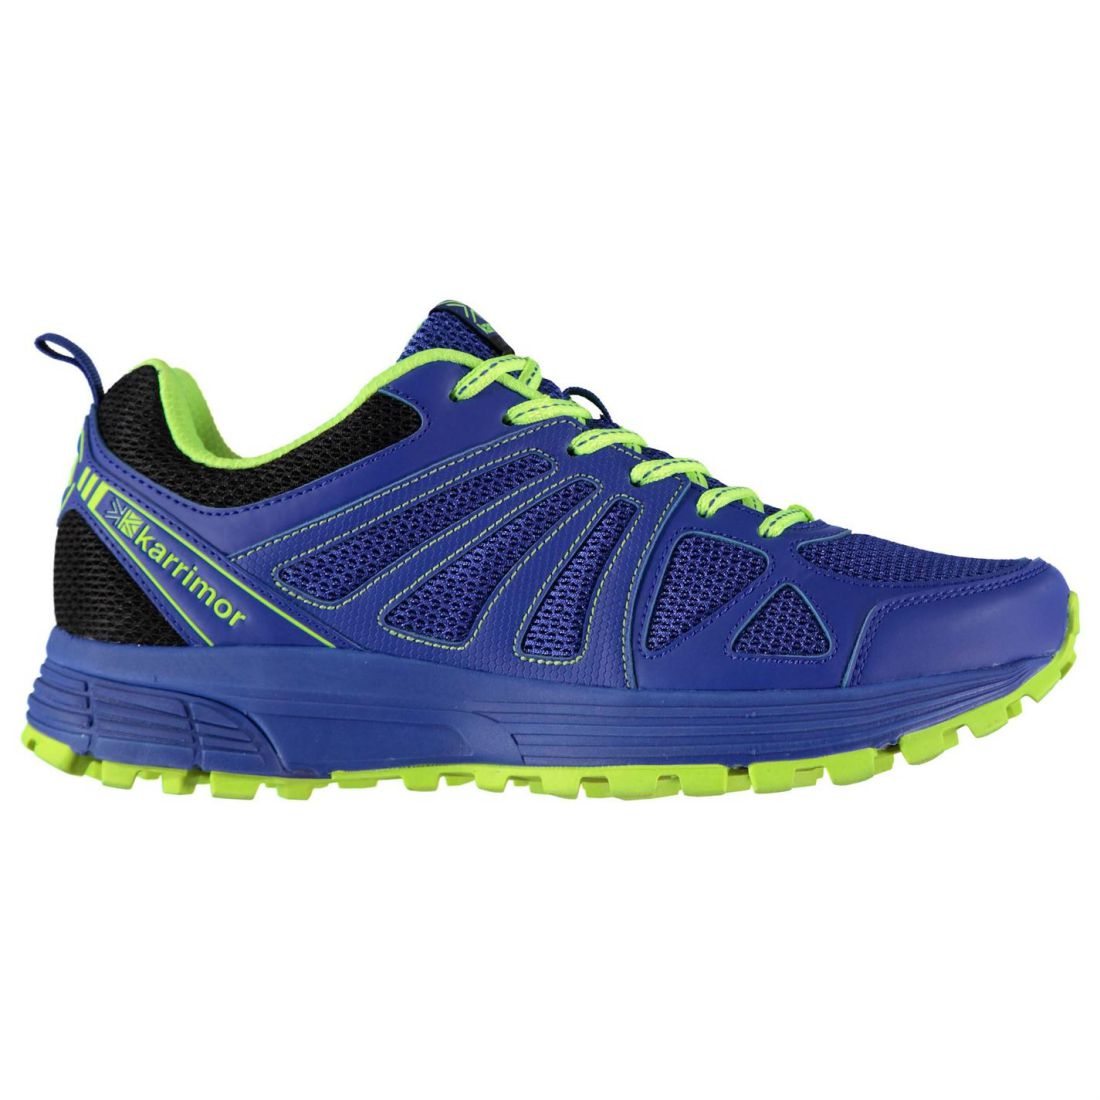 Karrimor-Men-Caracal-Trail-Running-Shoes-Trainers-Lace-Up-Breathable-Mesh-Panels thumbnail 4